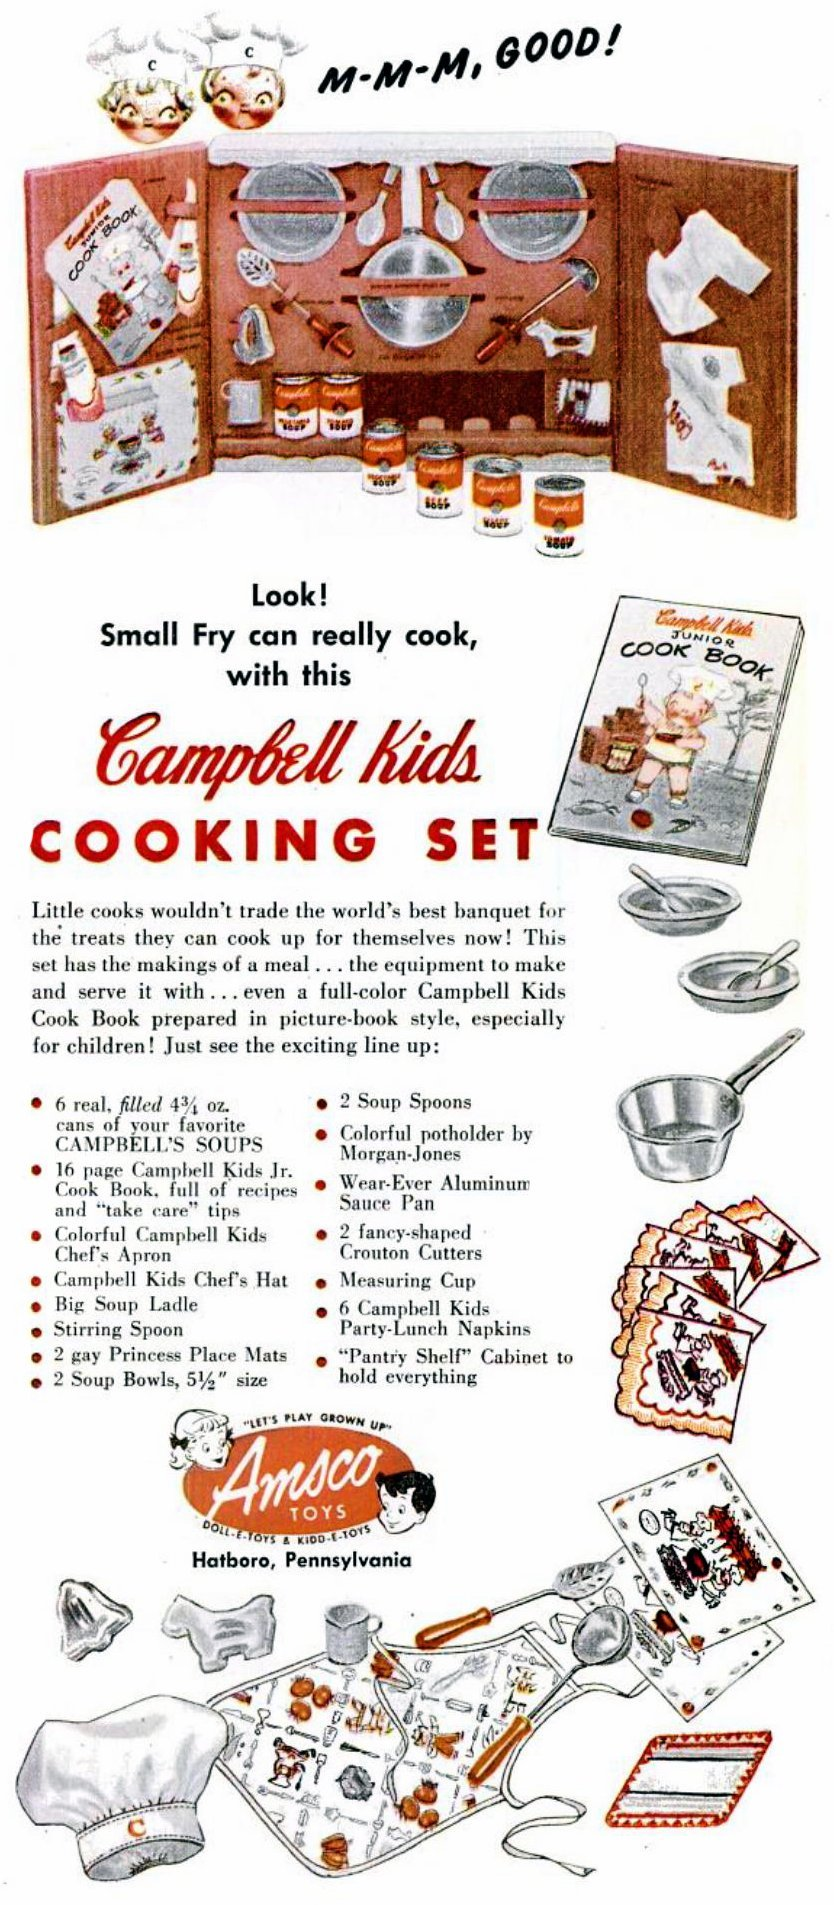 Vintage Campbell Kids cooking set for children from the 1950s